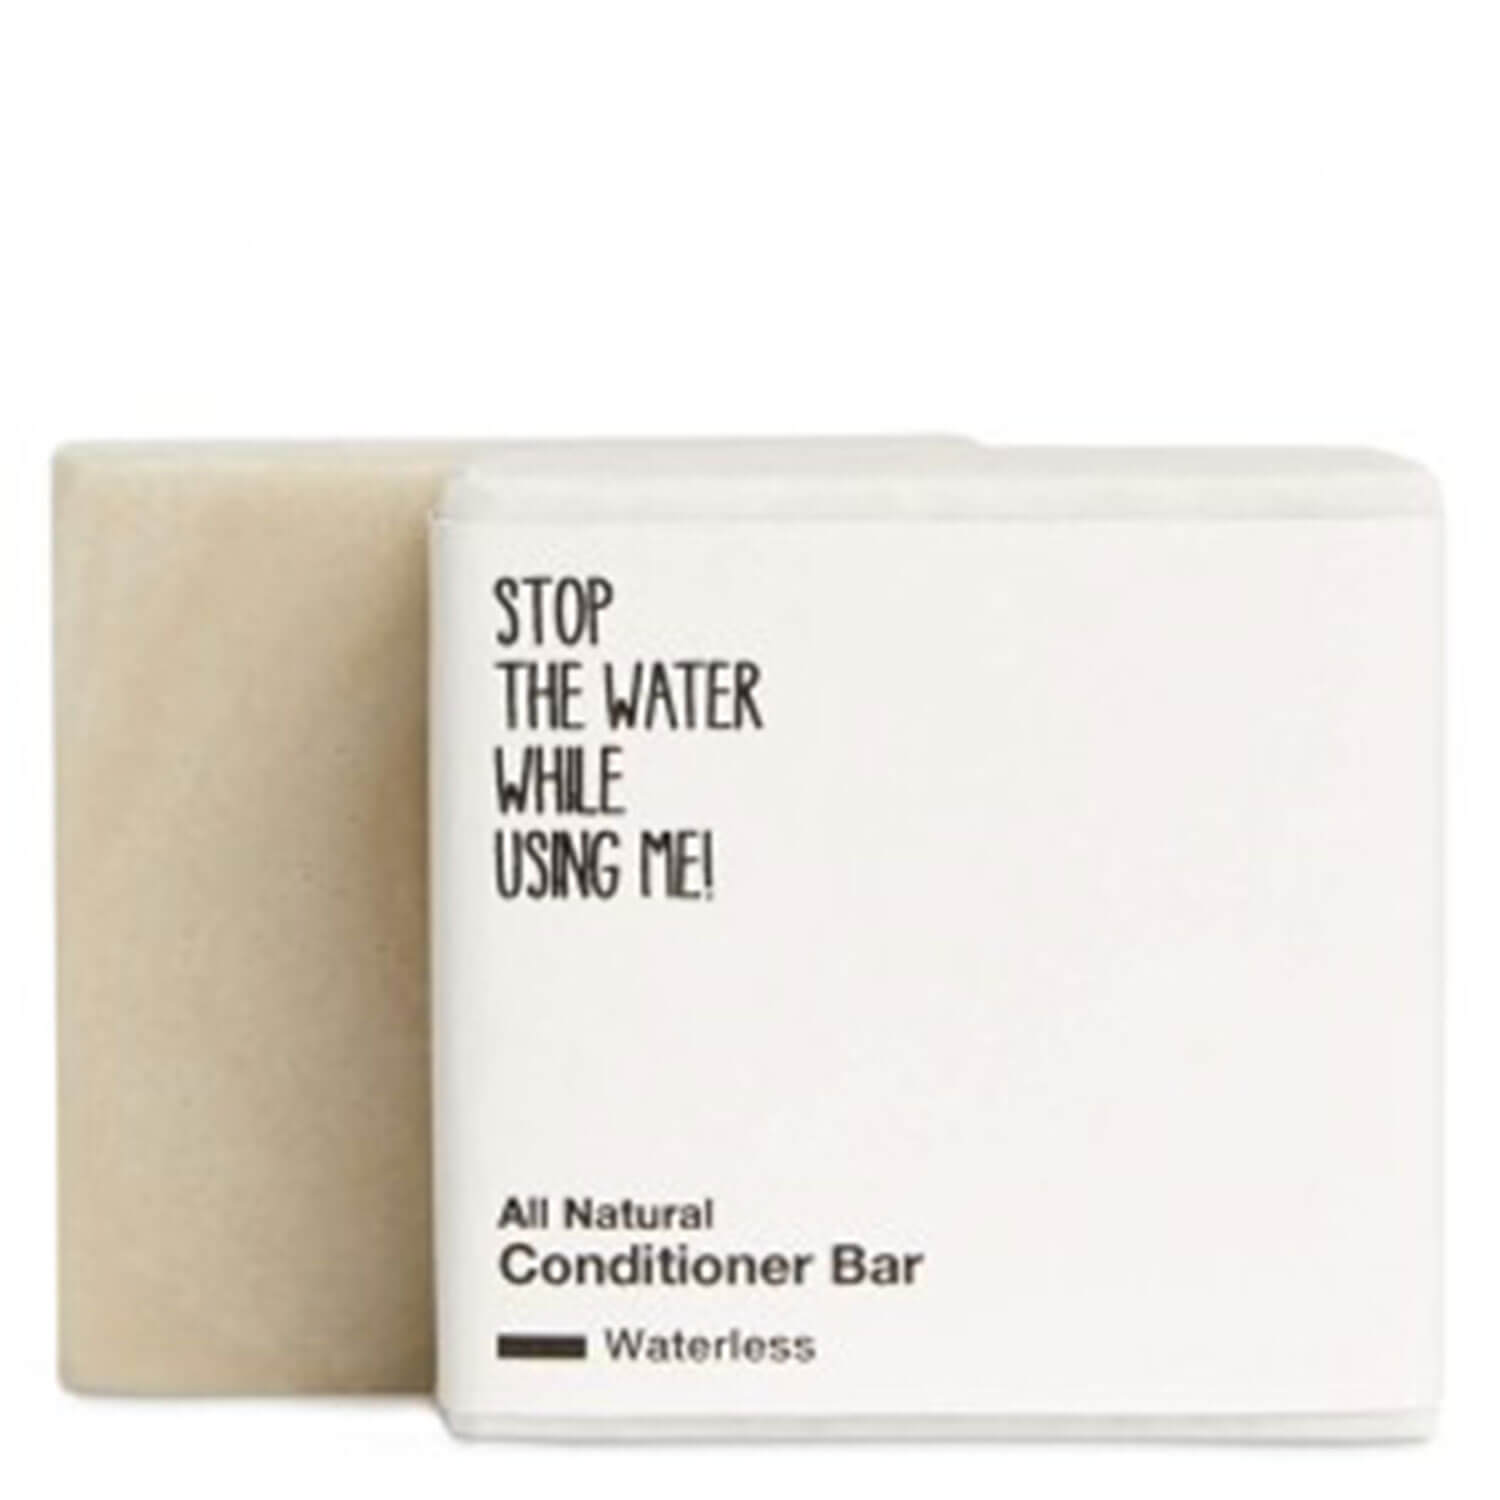 All Natural Hair - Waterless Conditioner Bar